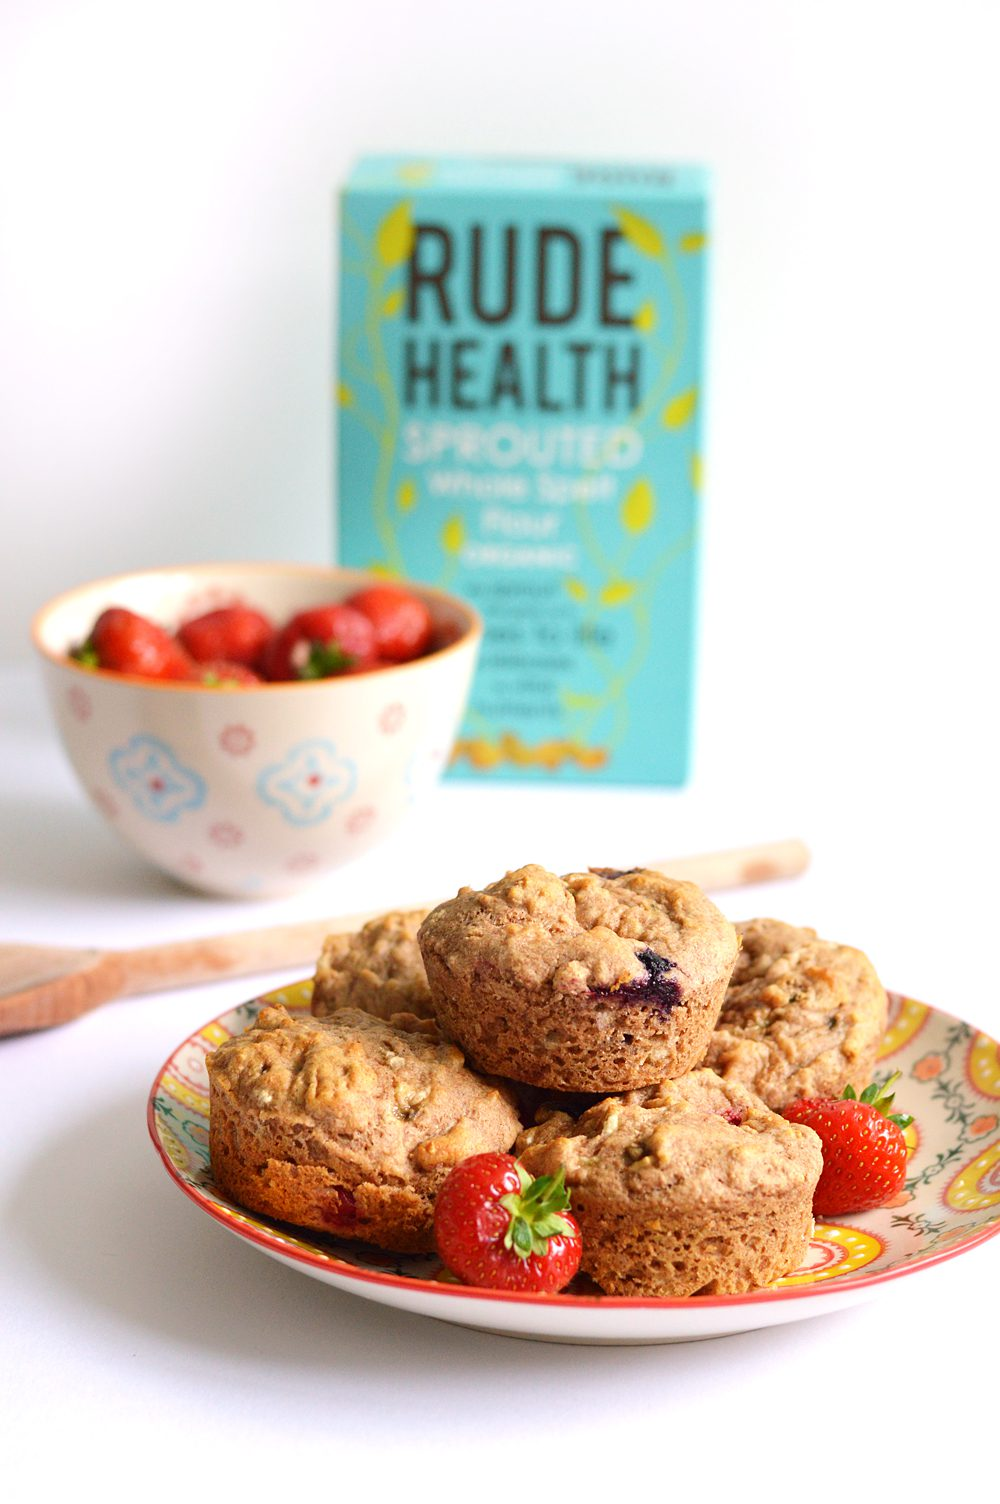 Rude health spouted grains muffins